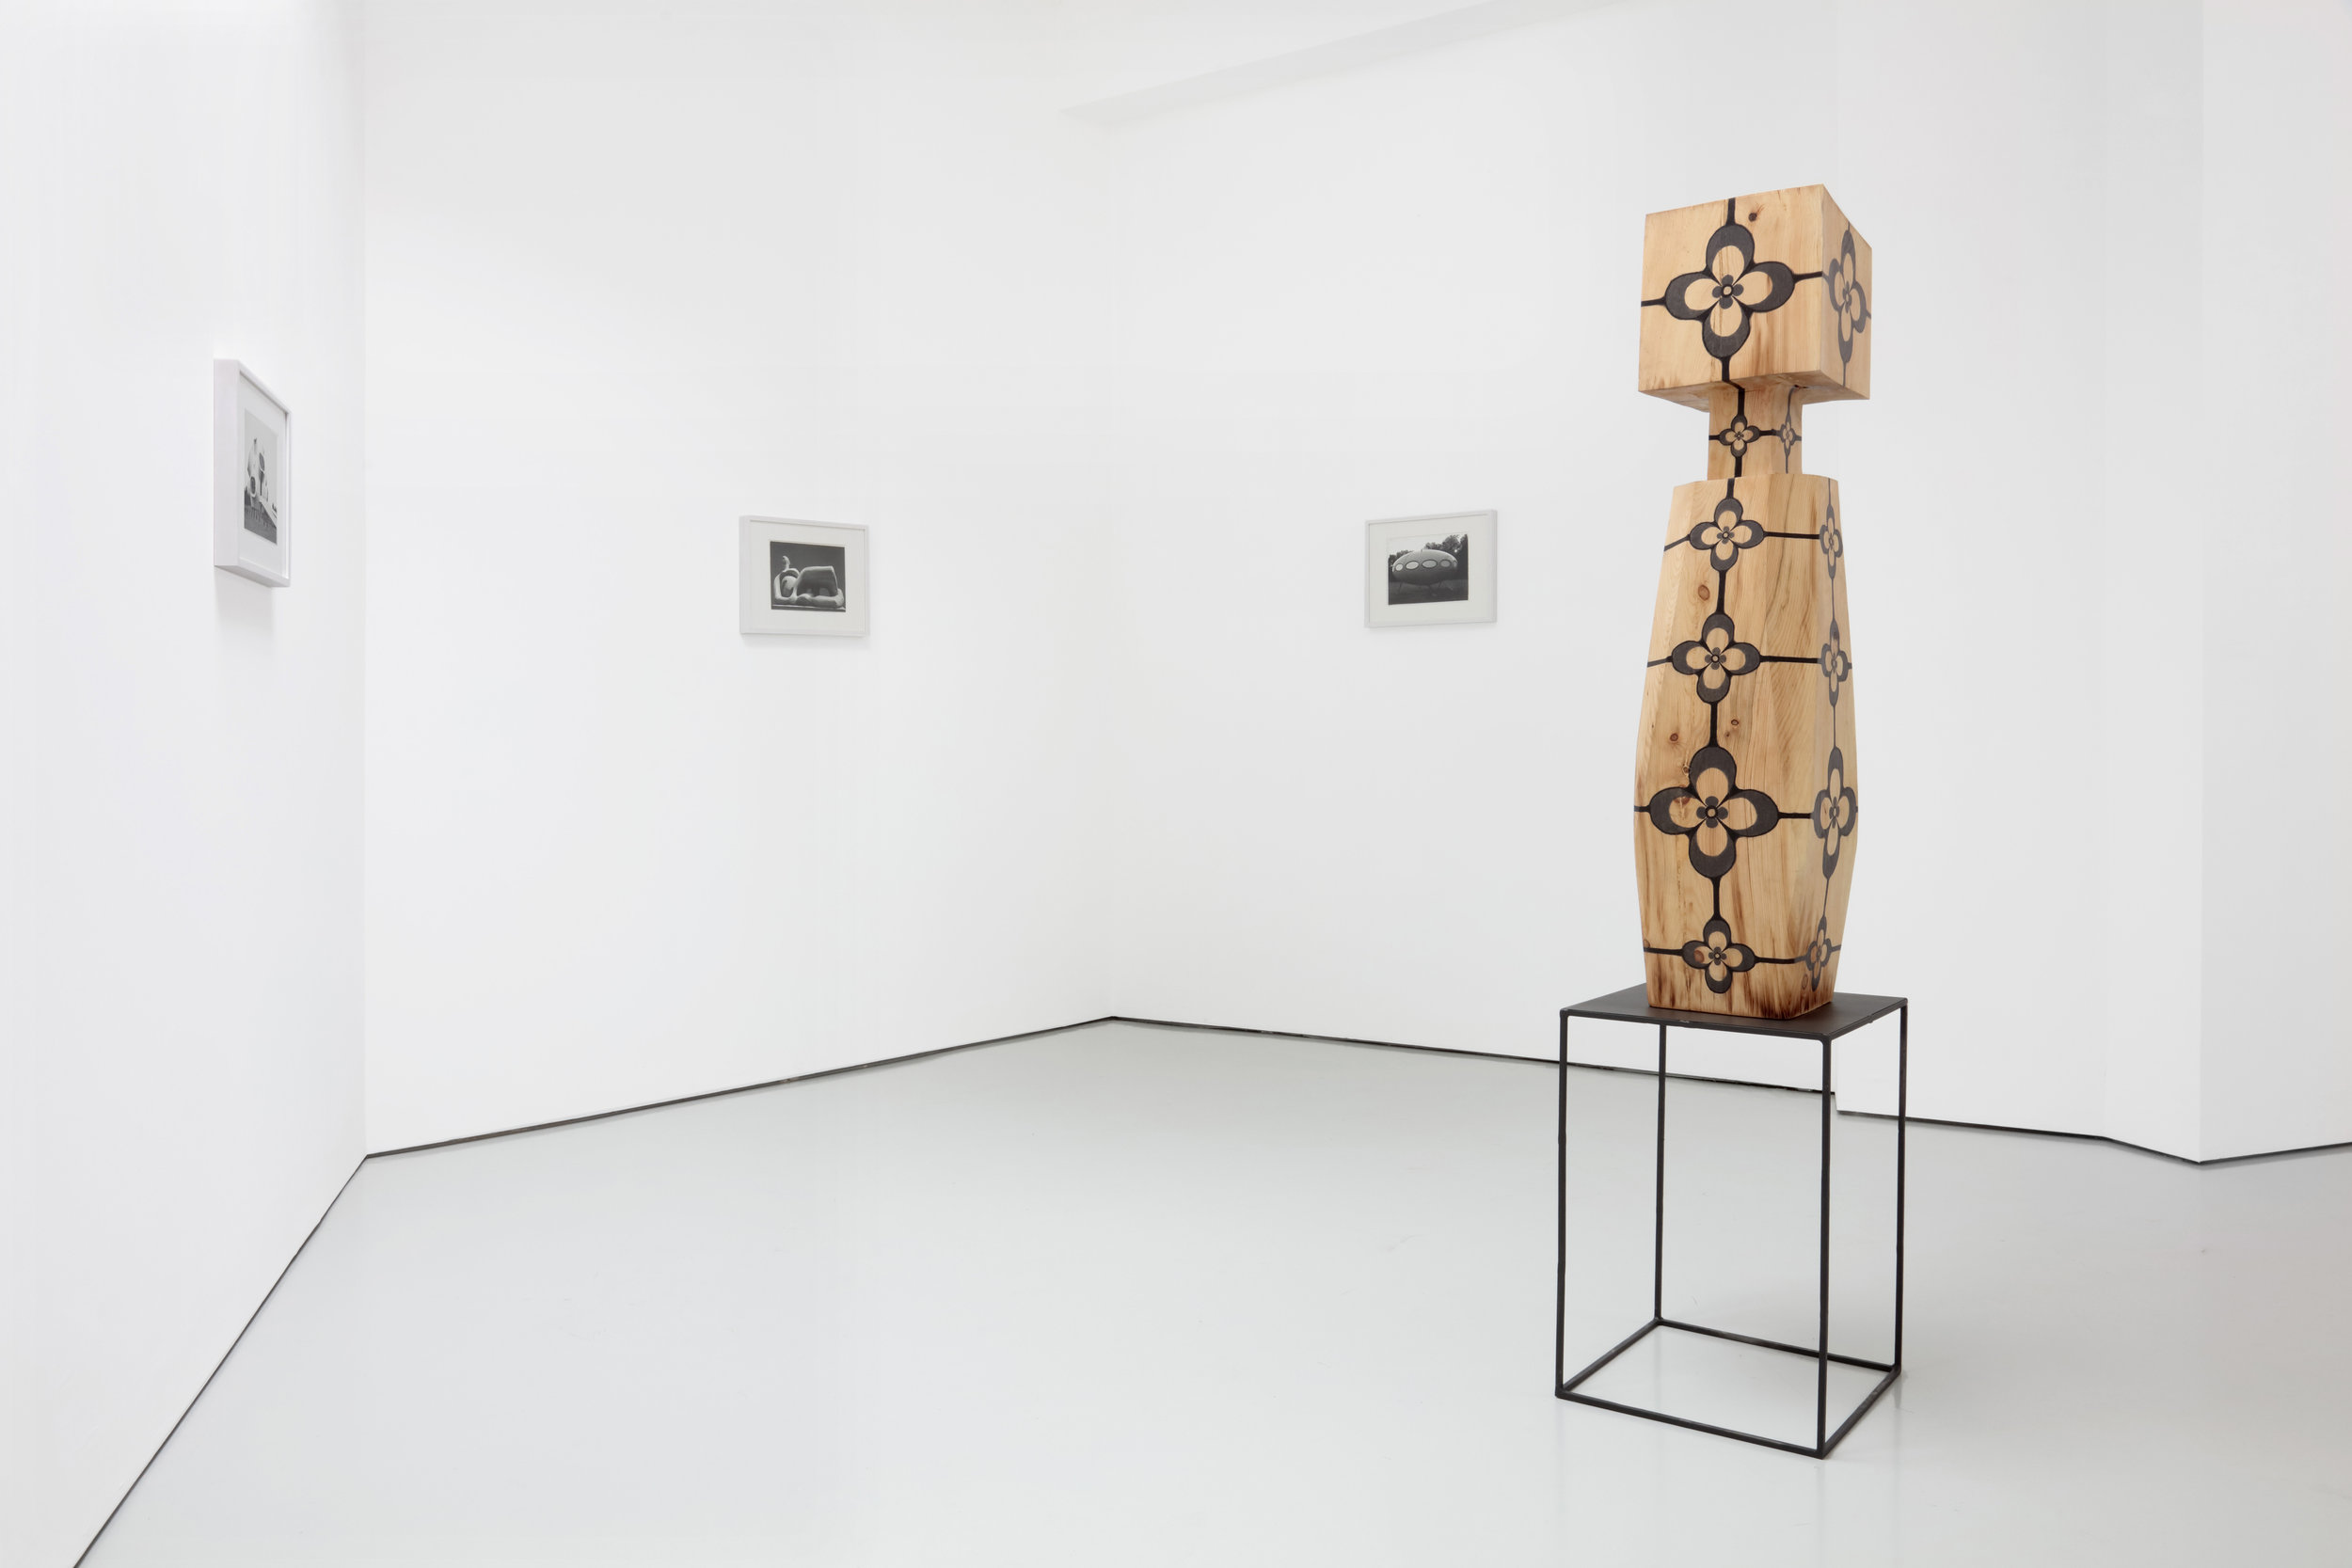 FOREGROUND  Untitled Figure , 2017 Pine, steel and graphite 68 x 16 x 16 Installation view, Luce Gallery, Torino, Italy, 2017. Image courtesy of Luce Gallery.